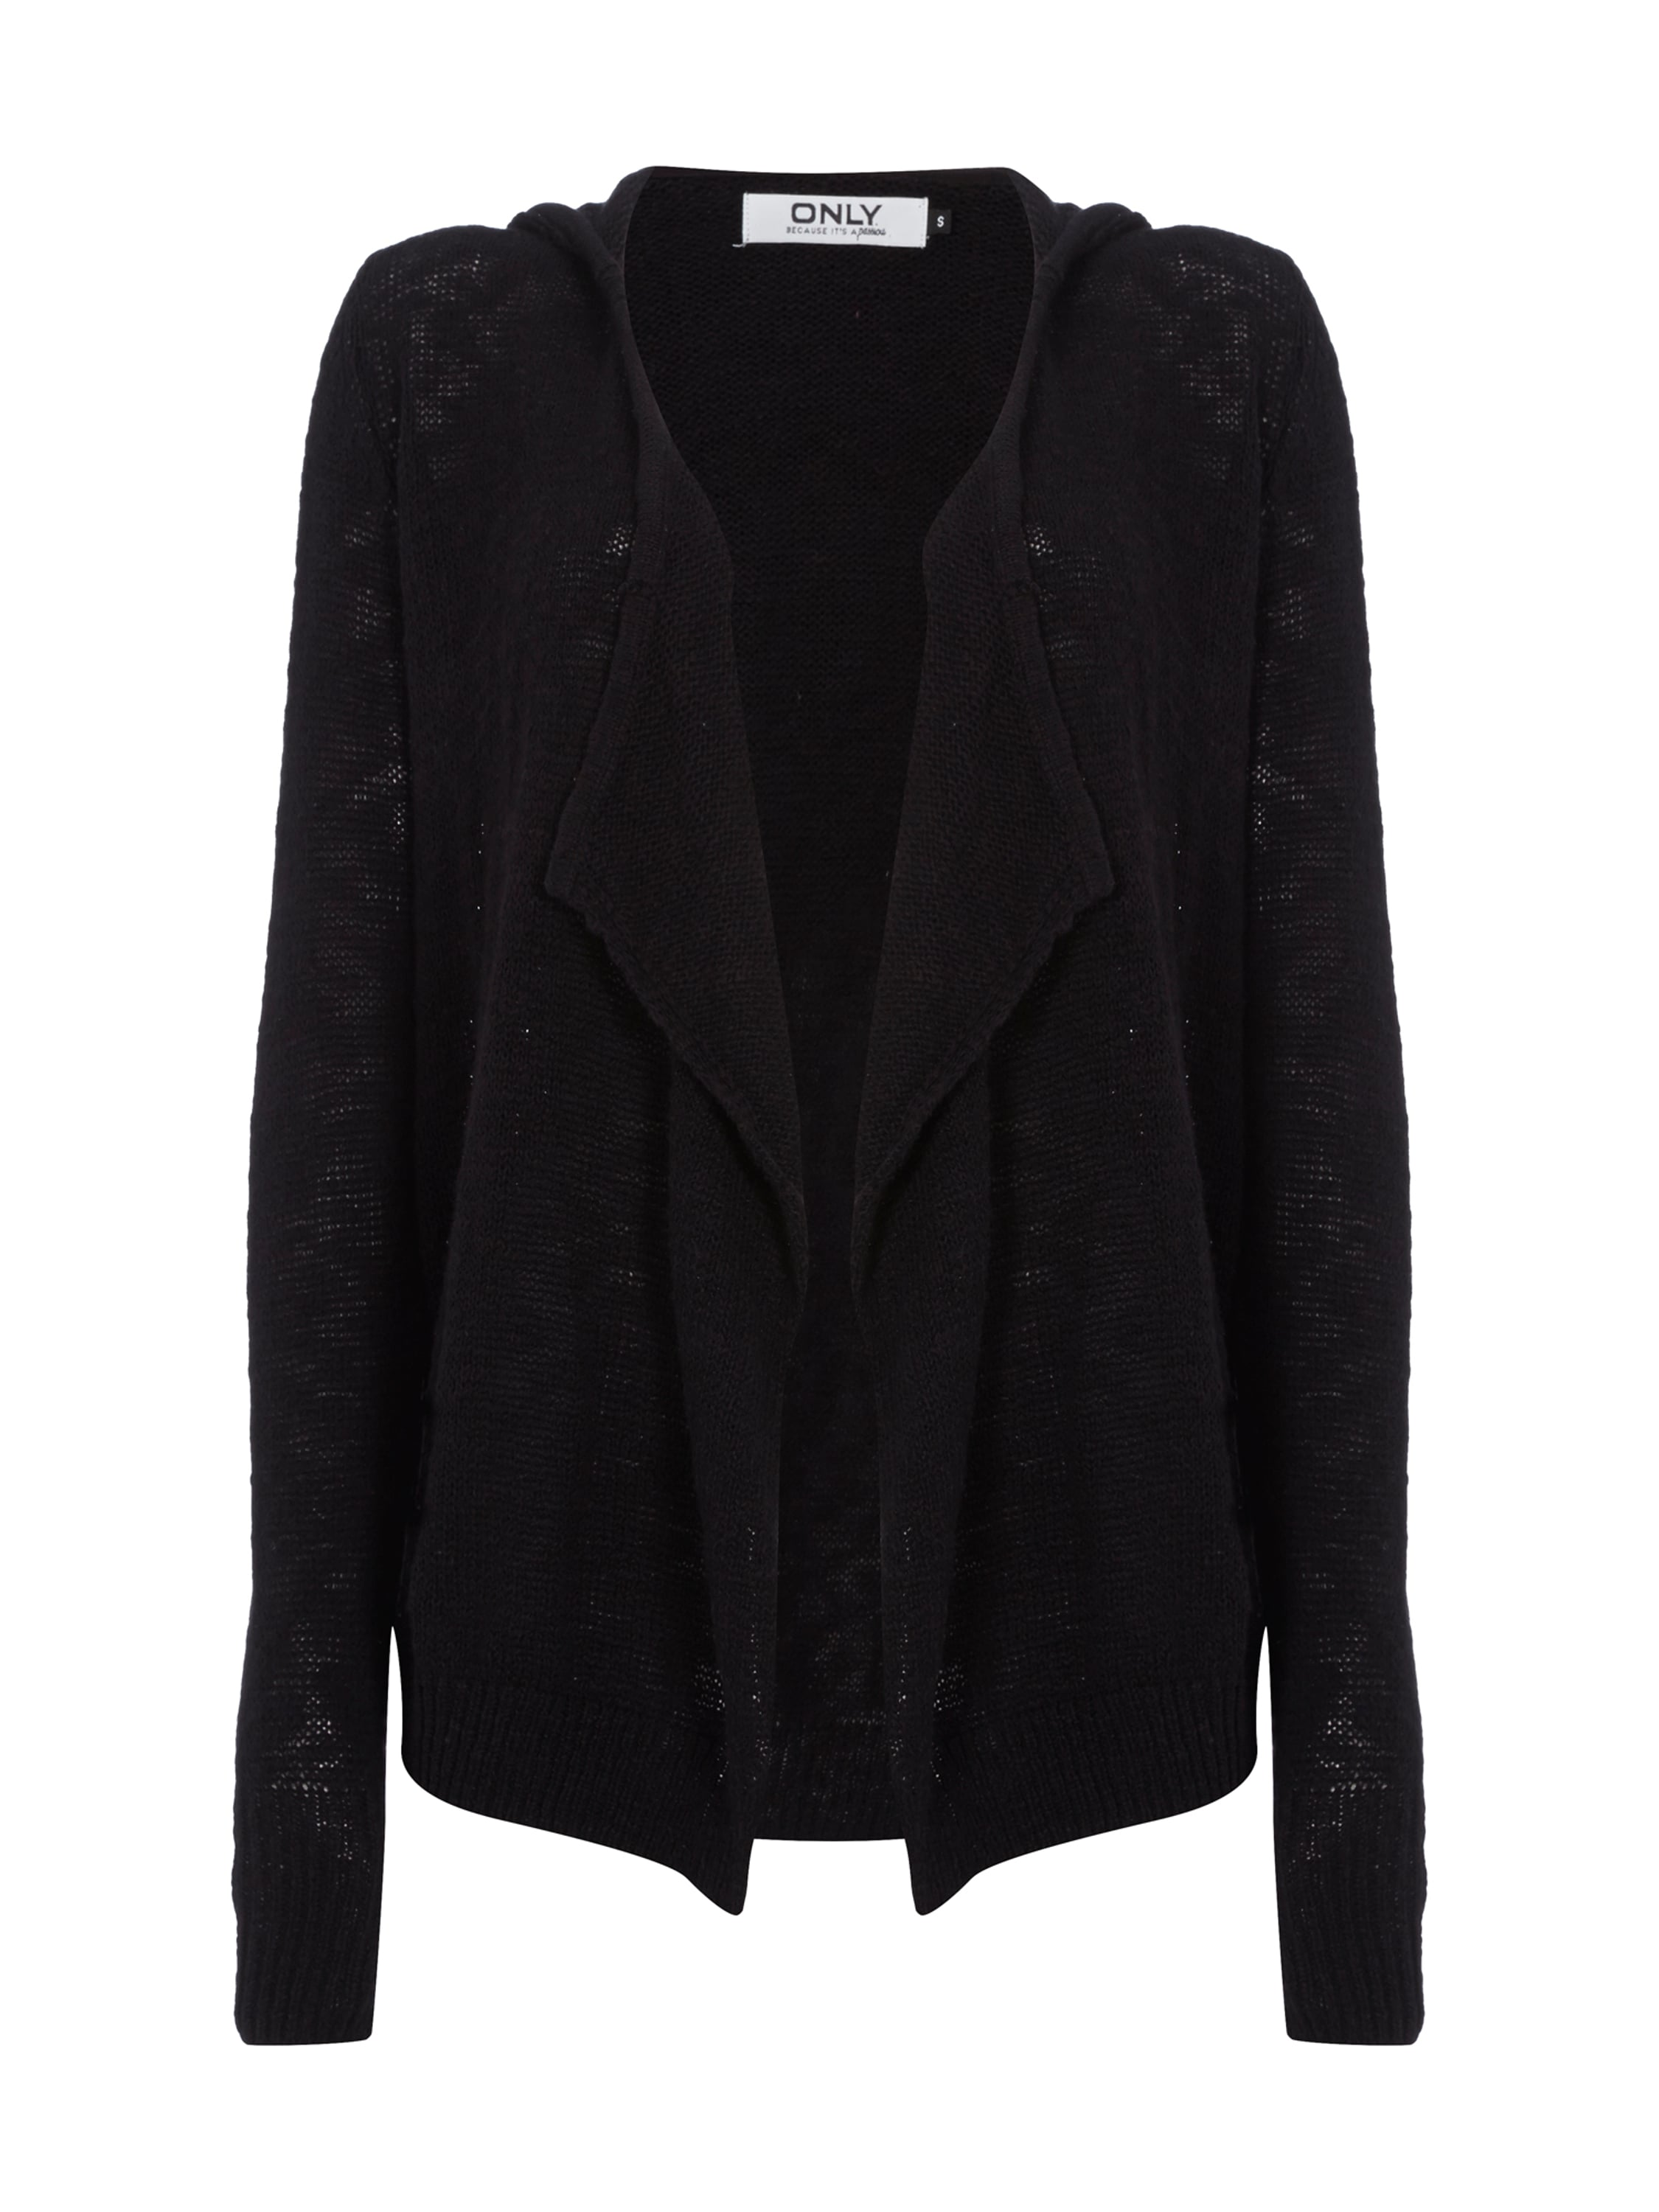 strick cardigan mit kapuze fashion id online shop. Black Bedroom Furniture Sets. Home Design Ideas